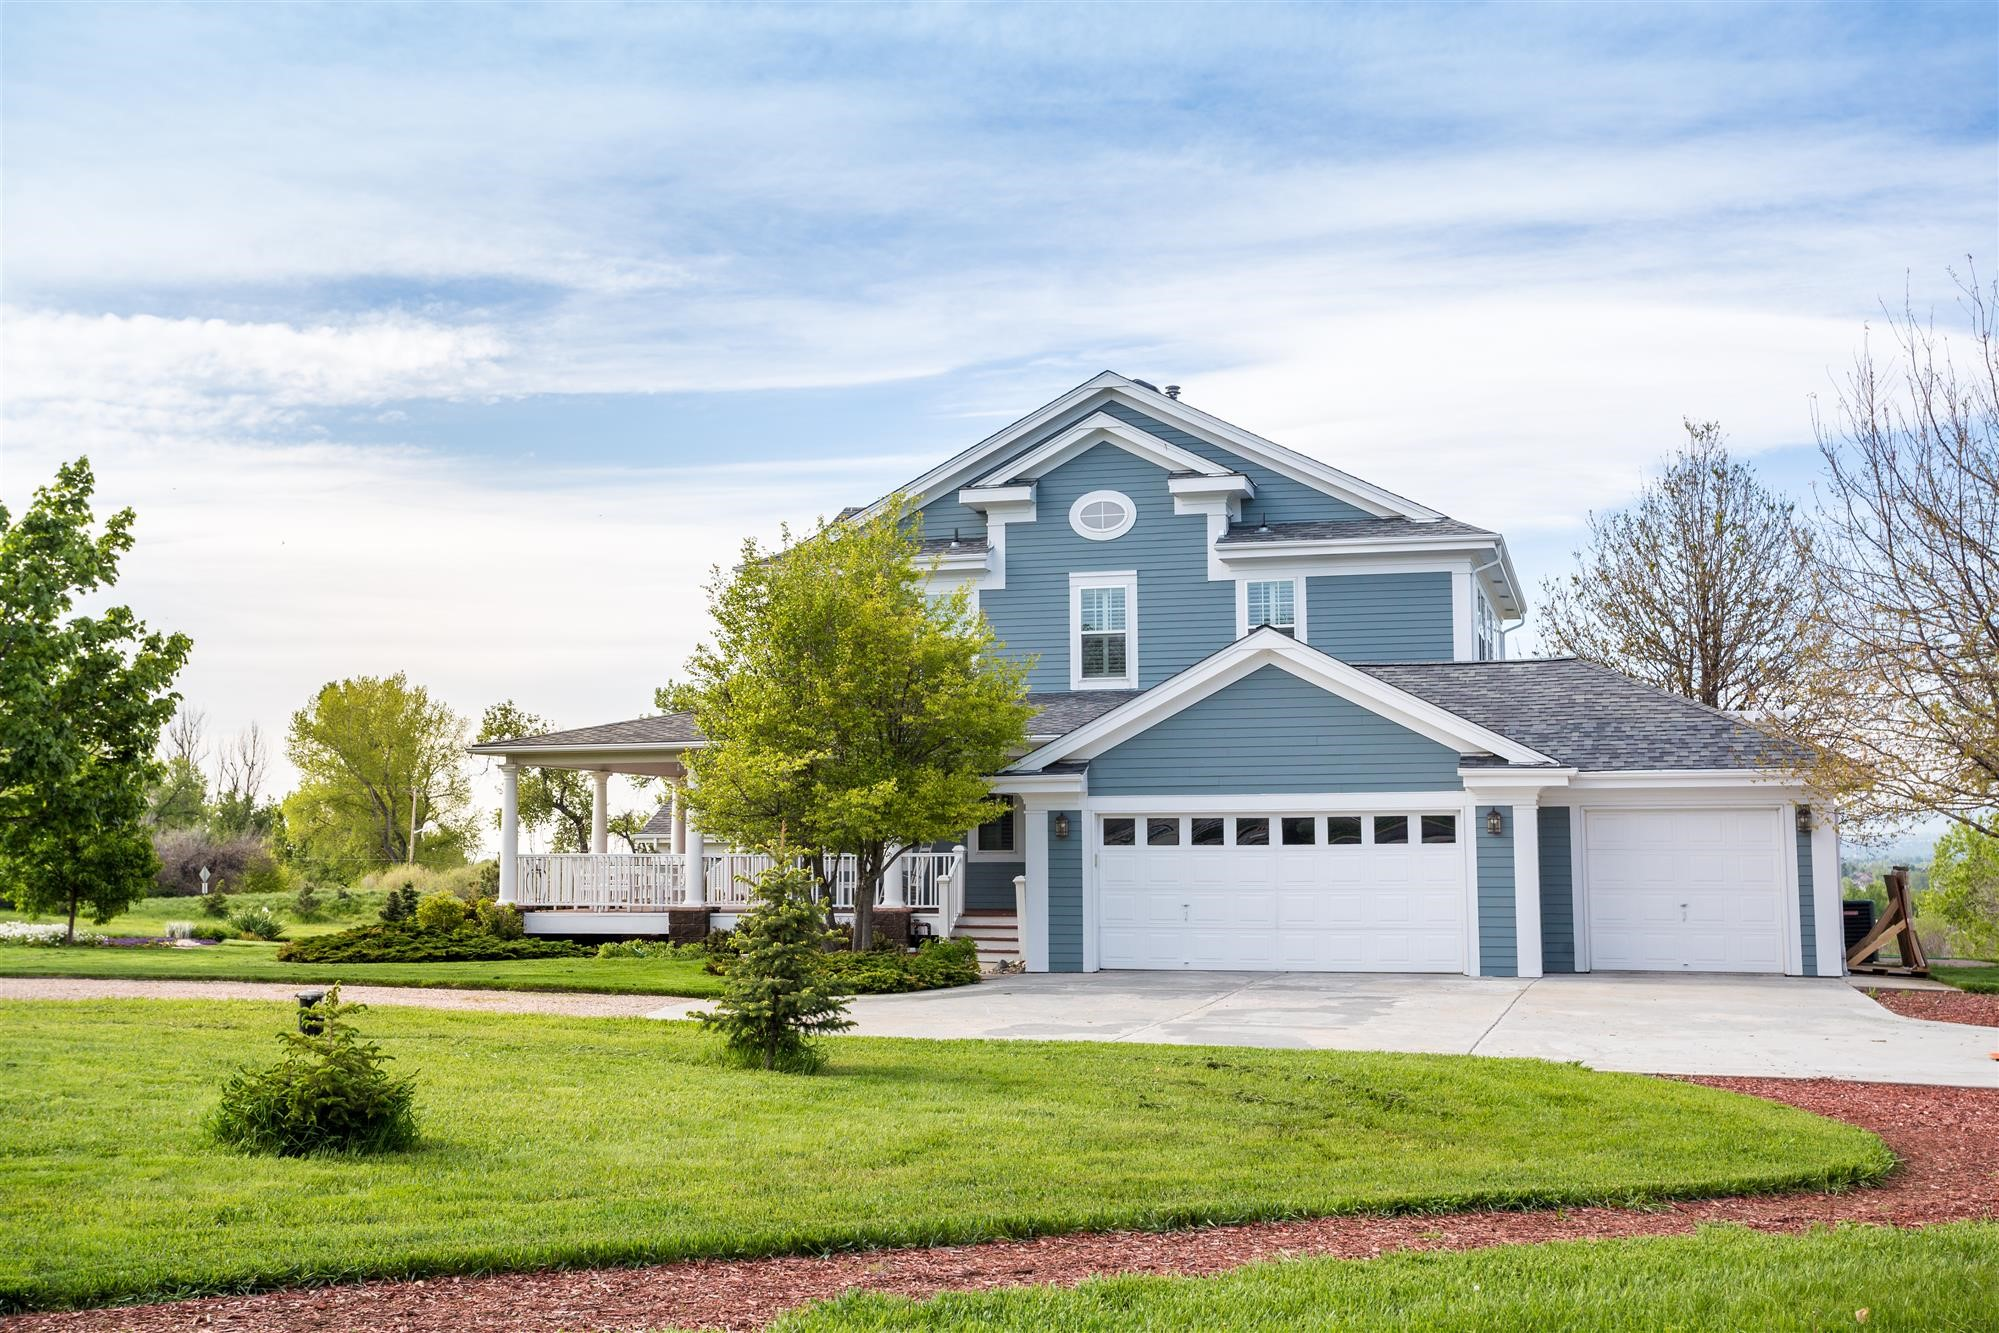 Splitting the House - The Buyout Option